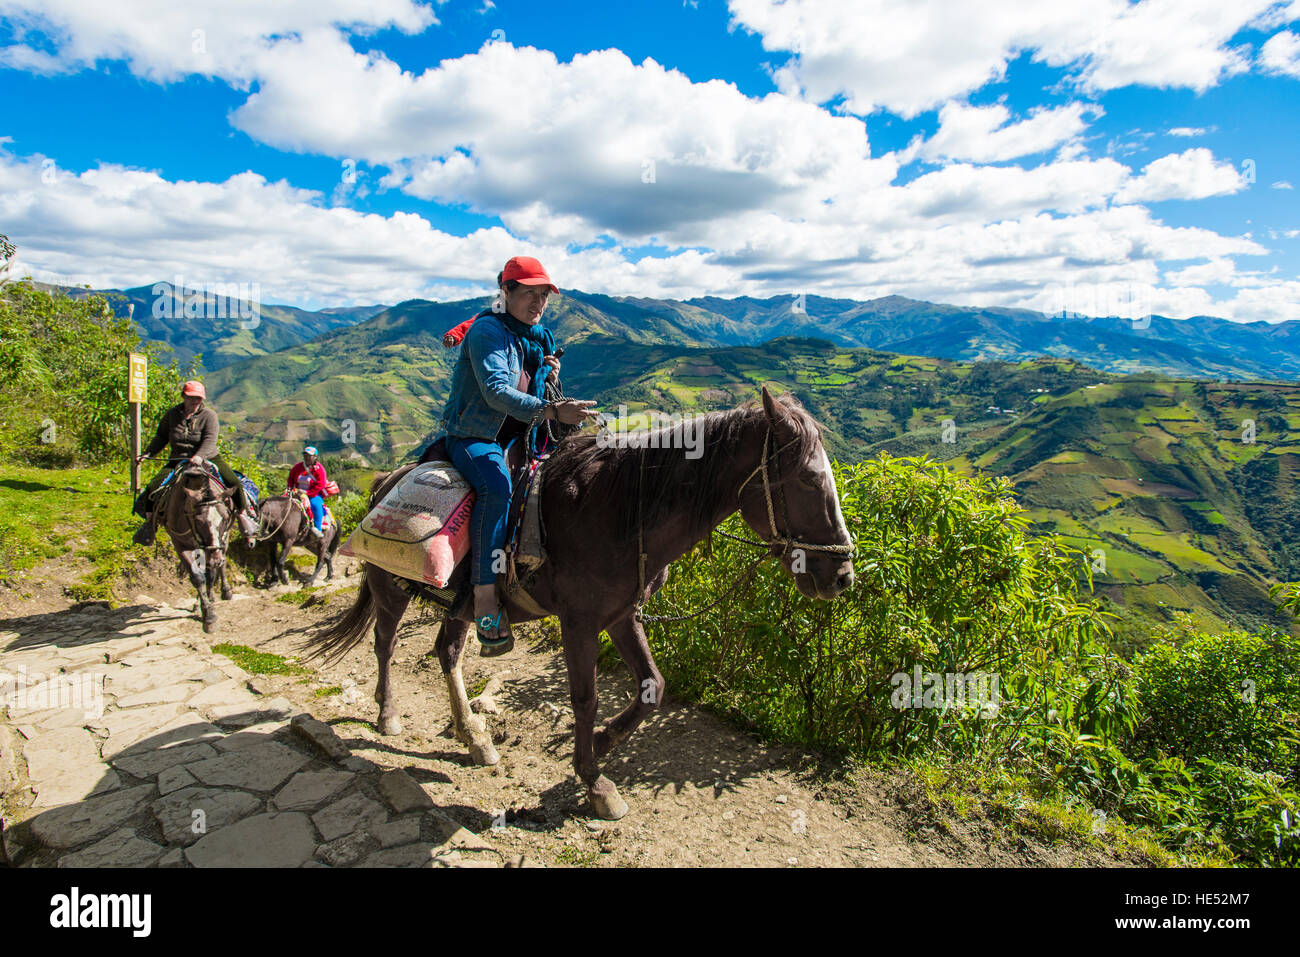 Horse riders on narrow path, Chachapoyas, Luya Province, Andes, Peru - Stock Image